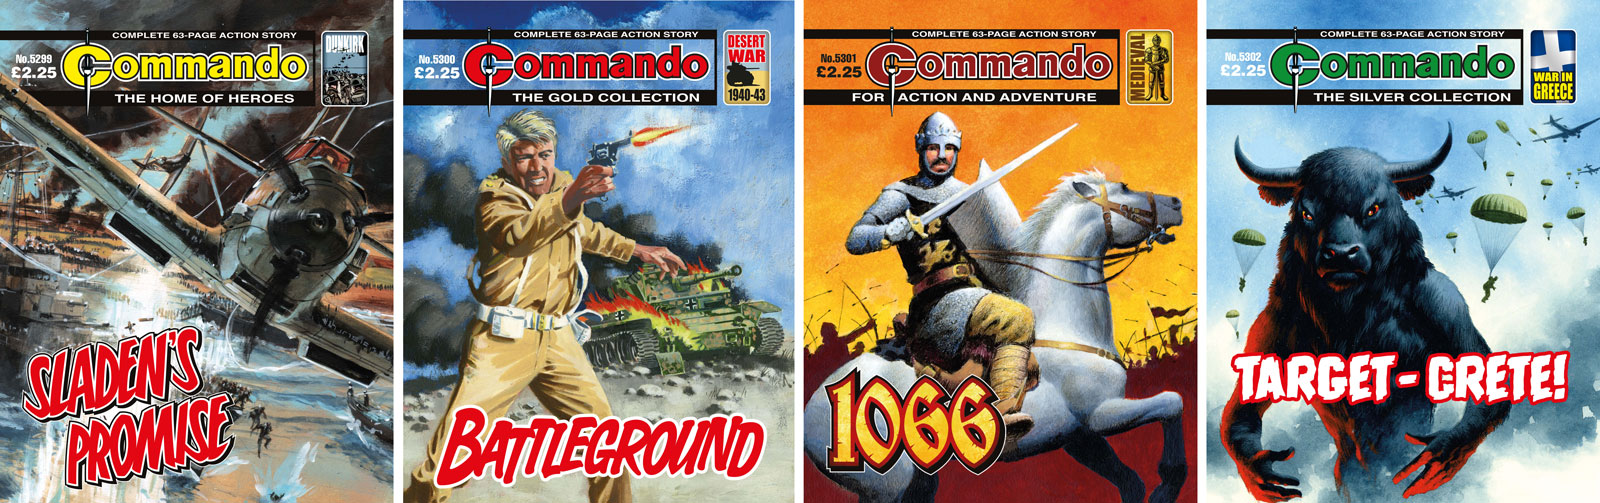 1066 and All That! Plus, is a Minotaur stalking Commando?